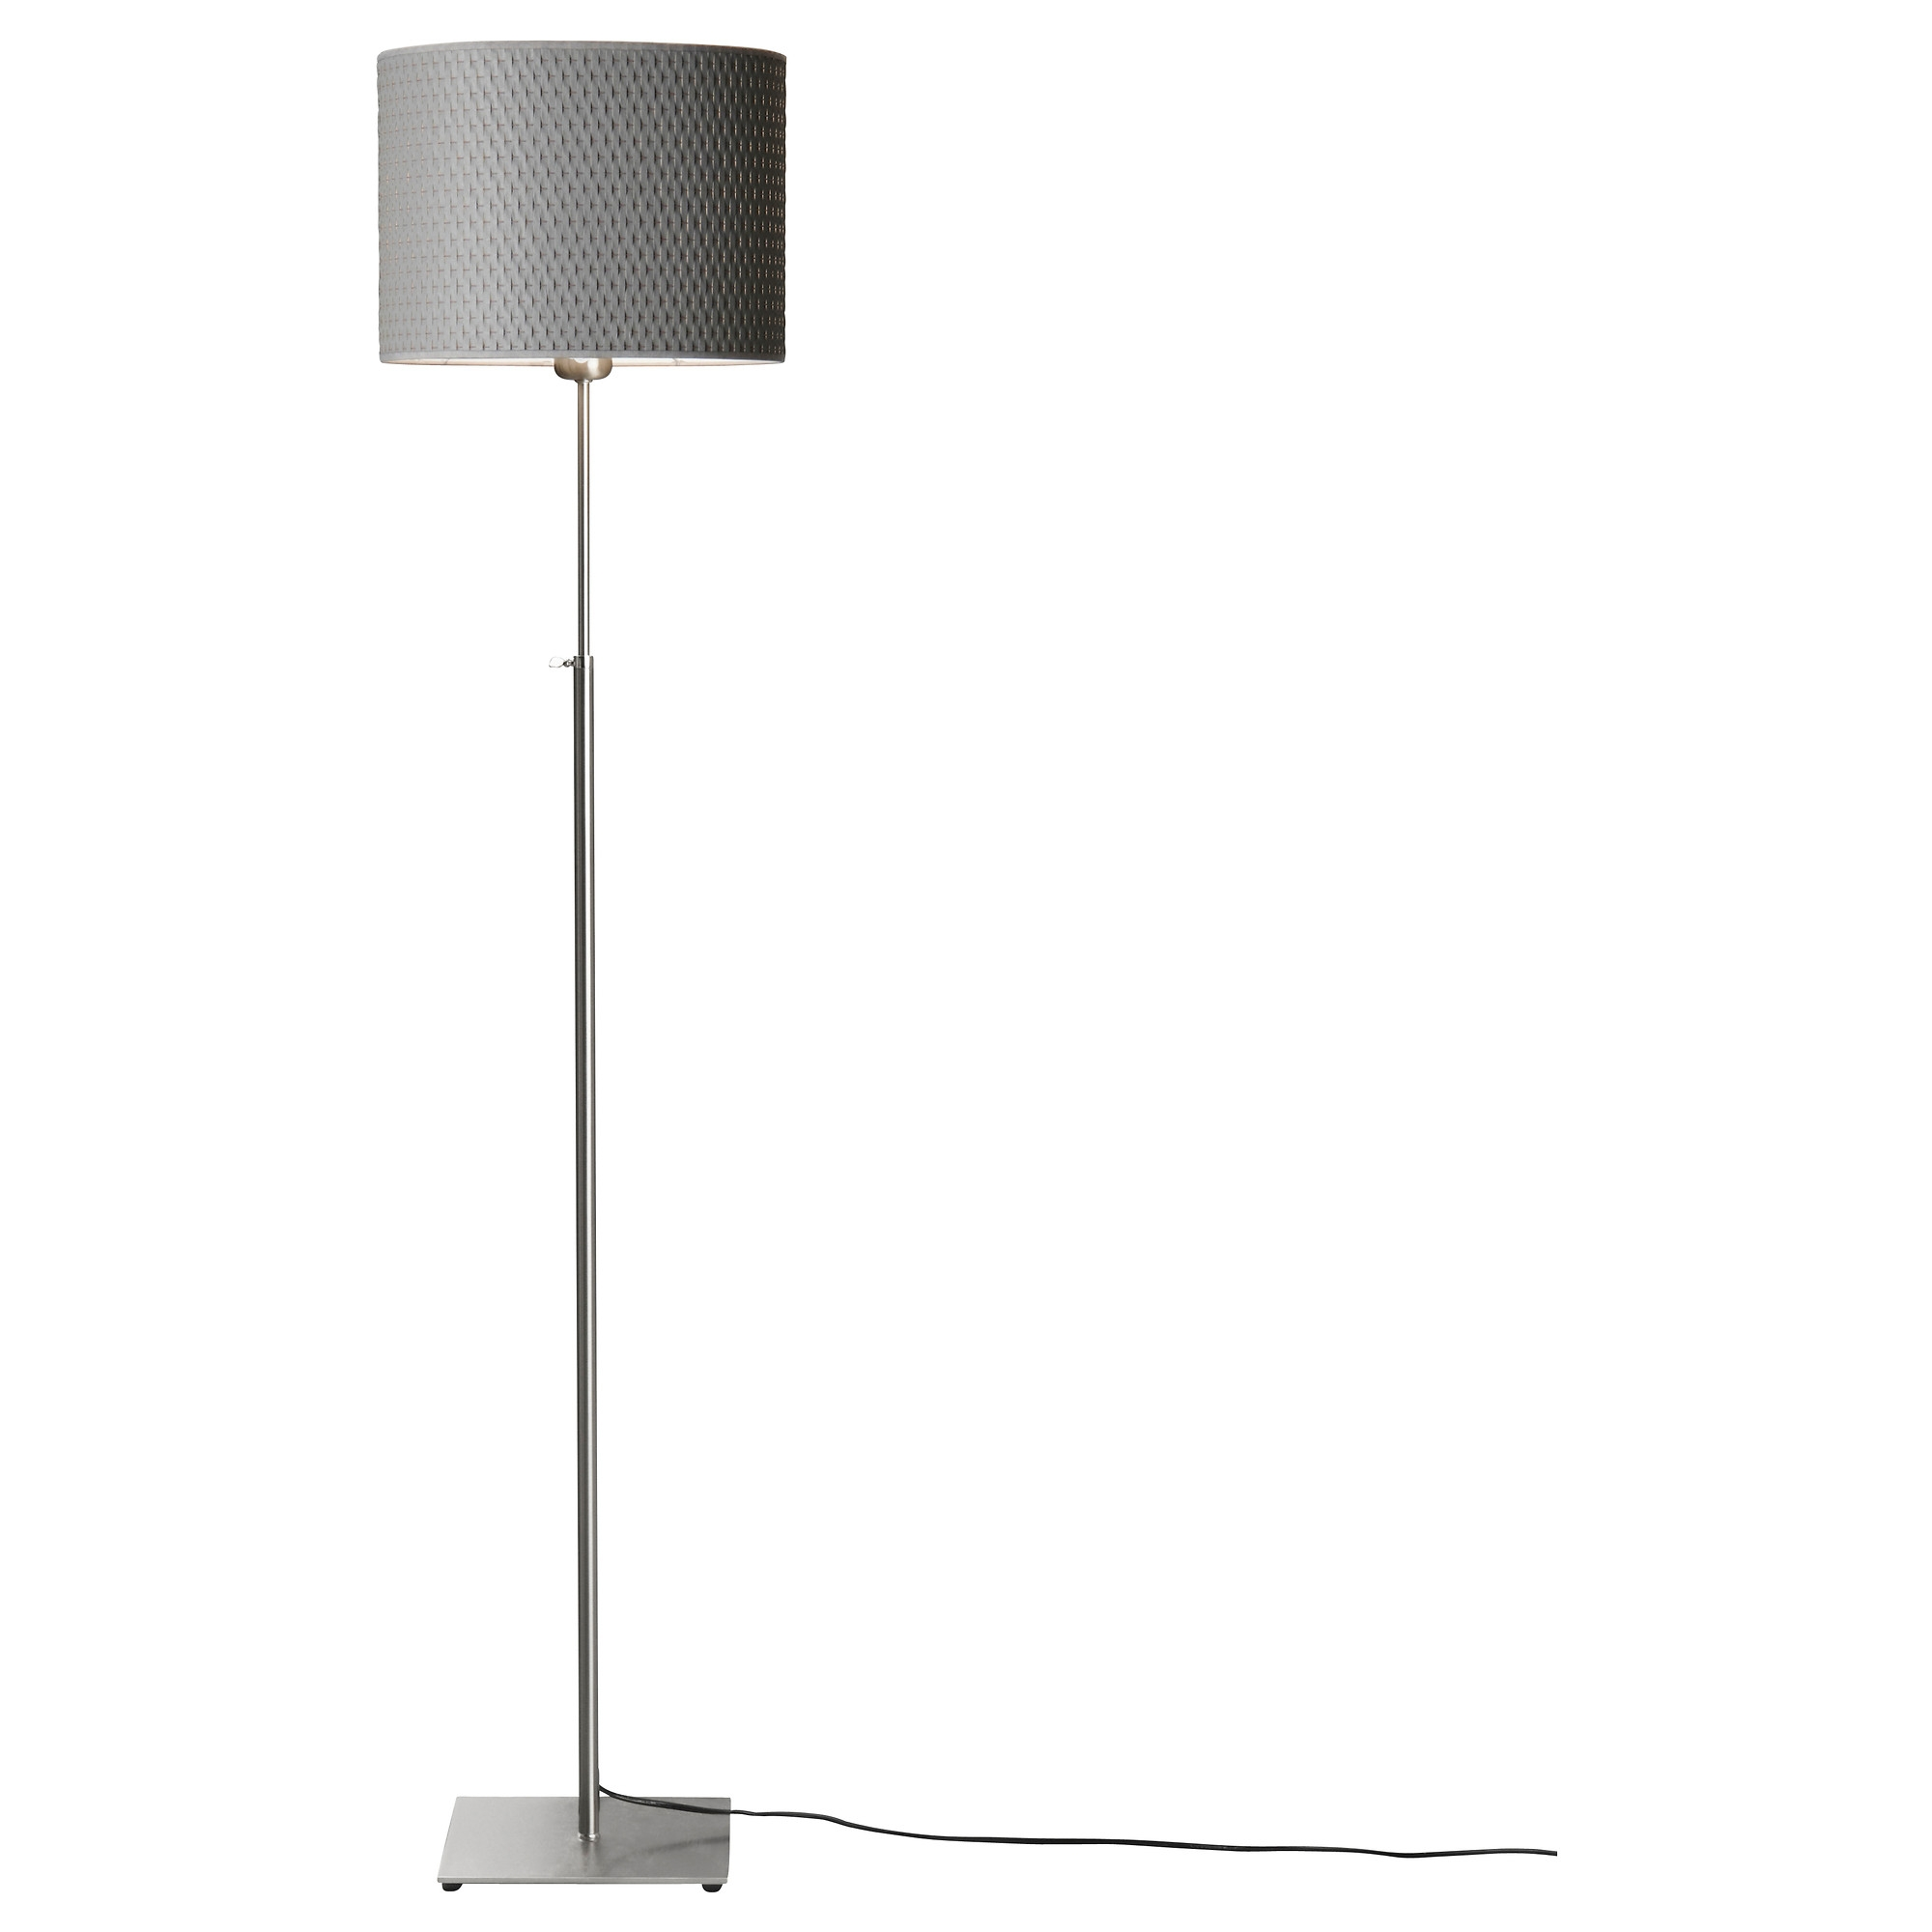 50 Lamp Stand Voltage Choose An Option 110v North America Japan Within Free Standing Chandelier Lamps (Image 1 of 25)